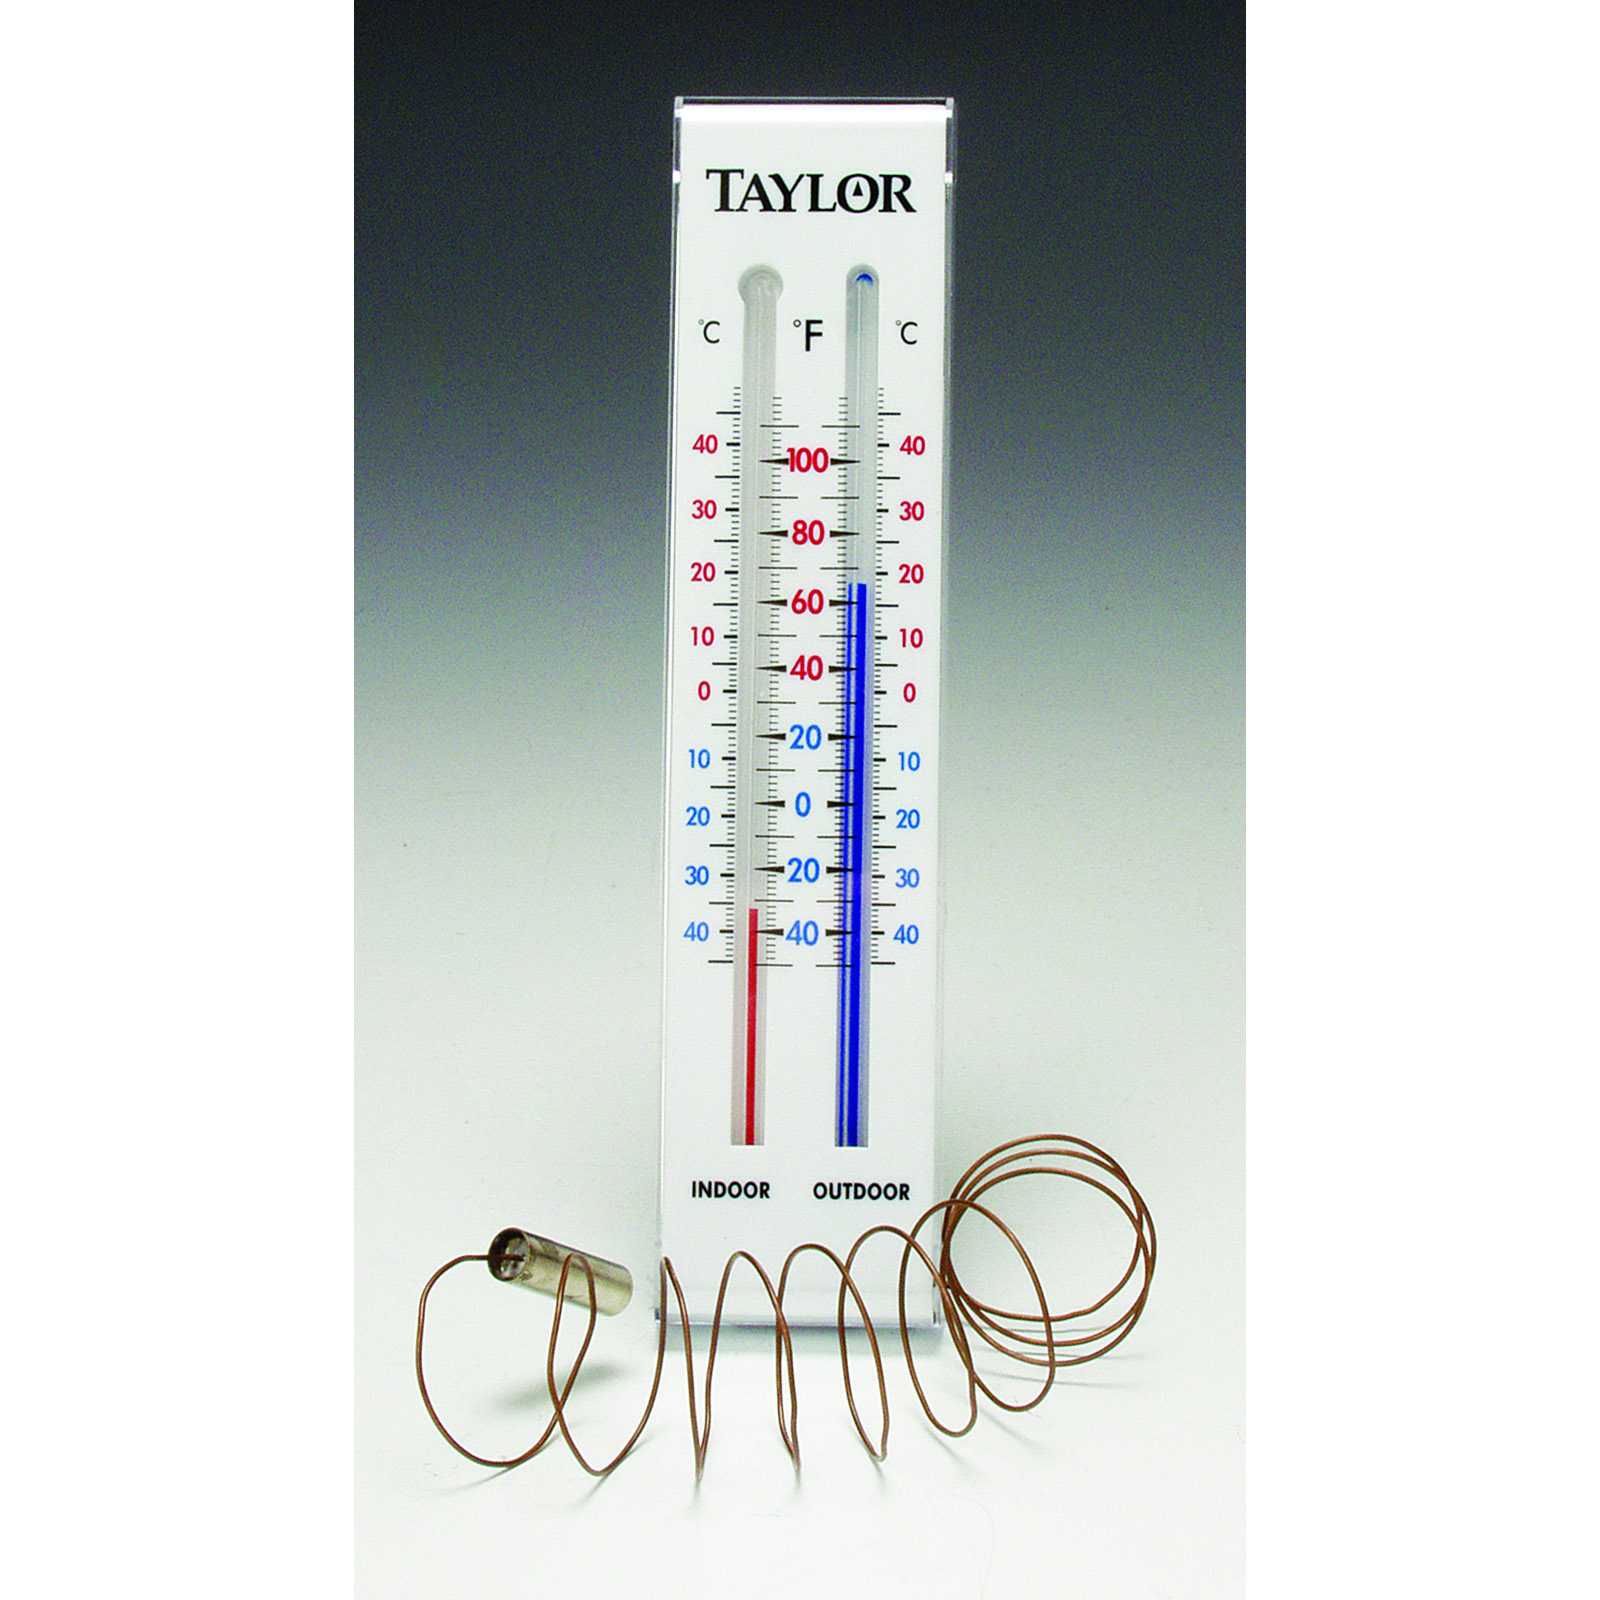 Taylor Precision 5327 thermometer, window wall